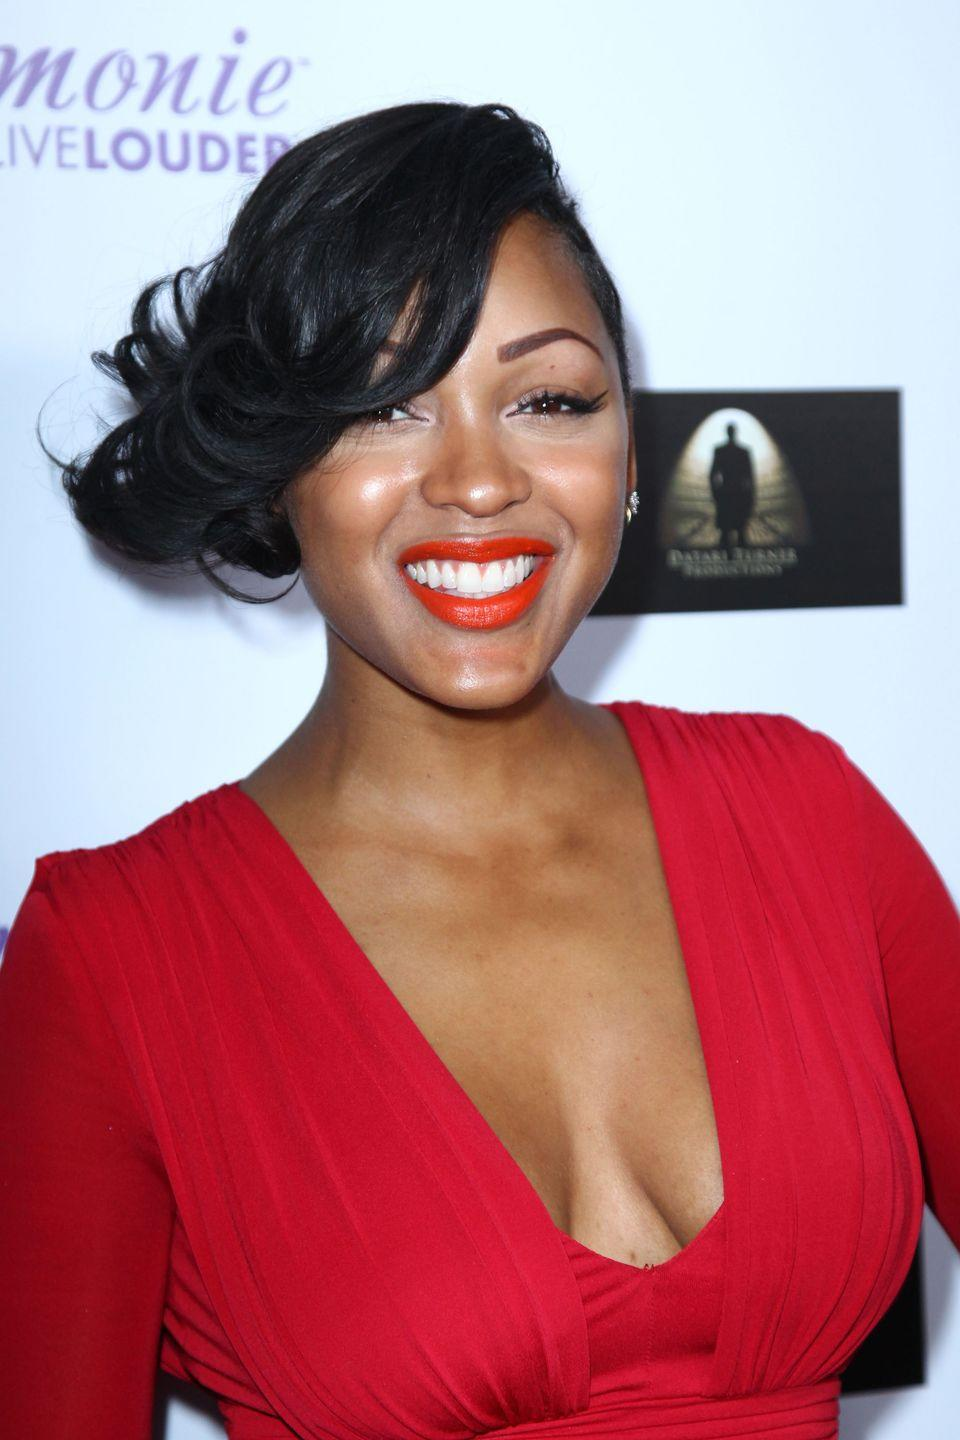 """<p>Actress <strong>Meagan Good</strong> served classic Hollywood glamour with <a href=""""https://www.goodhousekeeping.com/beauty/makeup/g2771/best-red-lipstick-for-all-skin-tones/"""" rel=""""nofollow noopener"""" target=""""_blank"""" data-ylk=""""slk:cherry red lipstick"""" class=""""link rapid-noclick-resp"""">cherry red lipstick</a> and a short cut with <a href=""""https://www.goodhousekeeping.com/beauty/hair/g3014/how-to-get-beach-waves-hair/"""" rel=""""nofollow noopener"""" target=""""_blank"""" data-ylk=""""slk:waves of hair"""" class=""""link rapid-noclick-resp"""">waves of hair</a> in the front. Her whimsical curls can be achieved by blending in <a href=""""https://www.goodhousekeeping.com/beauty/hair/g28449501/best-hair-extensions/"""" rel=""""nofollow noopener"""" target=""""_blank"""" data-ylk=""""slk:clip-in extensions"""" class=""""link rapid-noclick-resp"""">clip-in extensions</a>. </p><p><a class=""""link rapid-noclick-resp"""" href=""""https://www.amazon.com/Best-Sellers-Beauty-Hair-Extensions/zgbs/beauty/702379011?tag=syn-yahoo-20&ascsubtag=%5Bartid%7C10055.g.2471%5Bsrc%7Cyahoo-us"""" rel=""""nofollow noopener"""" target=""""_blank"""" data-ylk=""""slk:SHOP HAIR EXTENSIONS"""">SHOP HAIR EXTENSIONS </a></p>"""